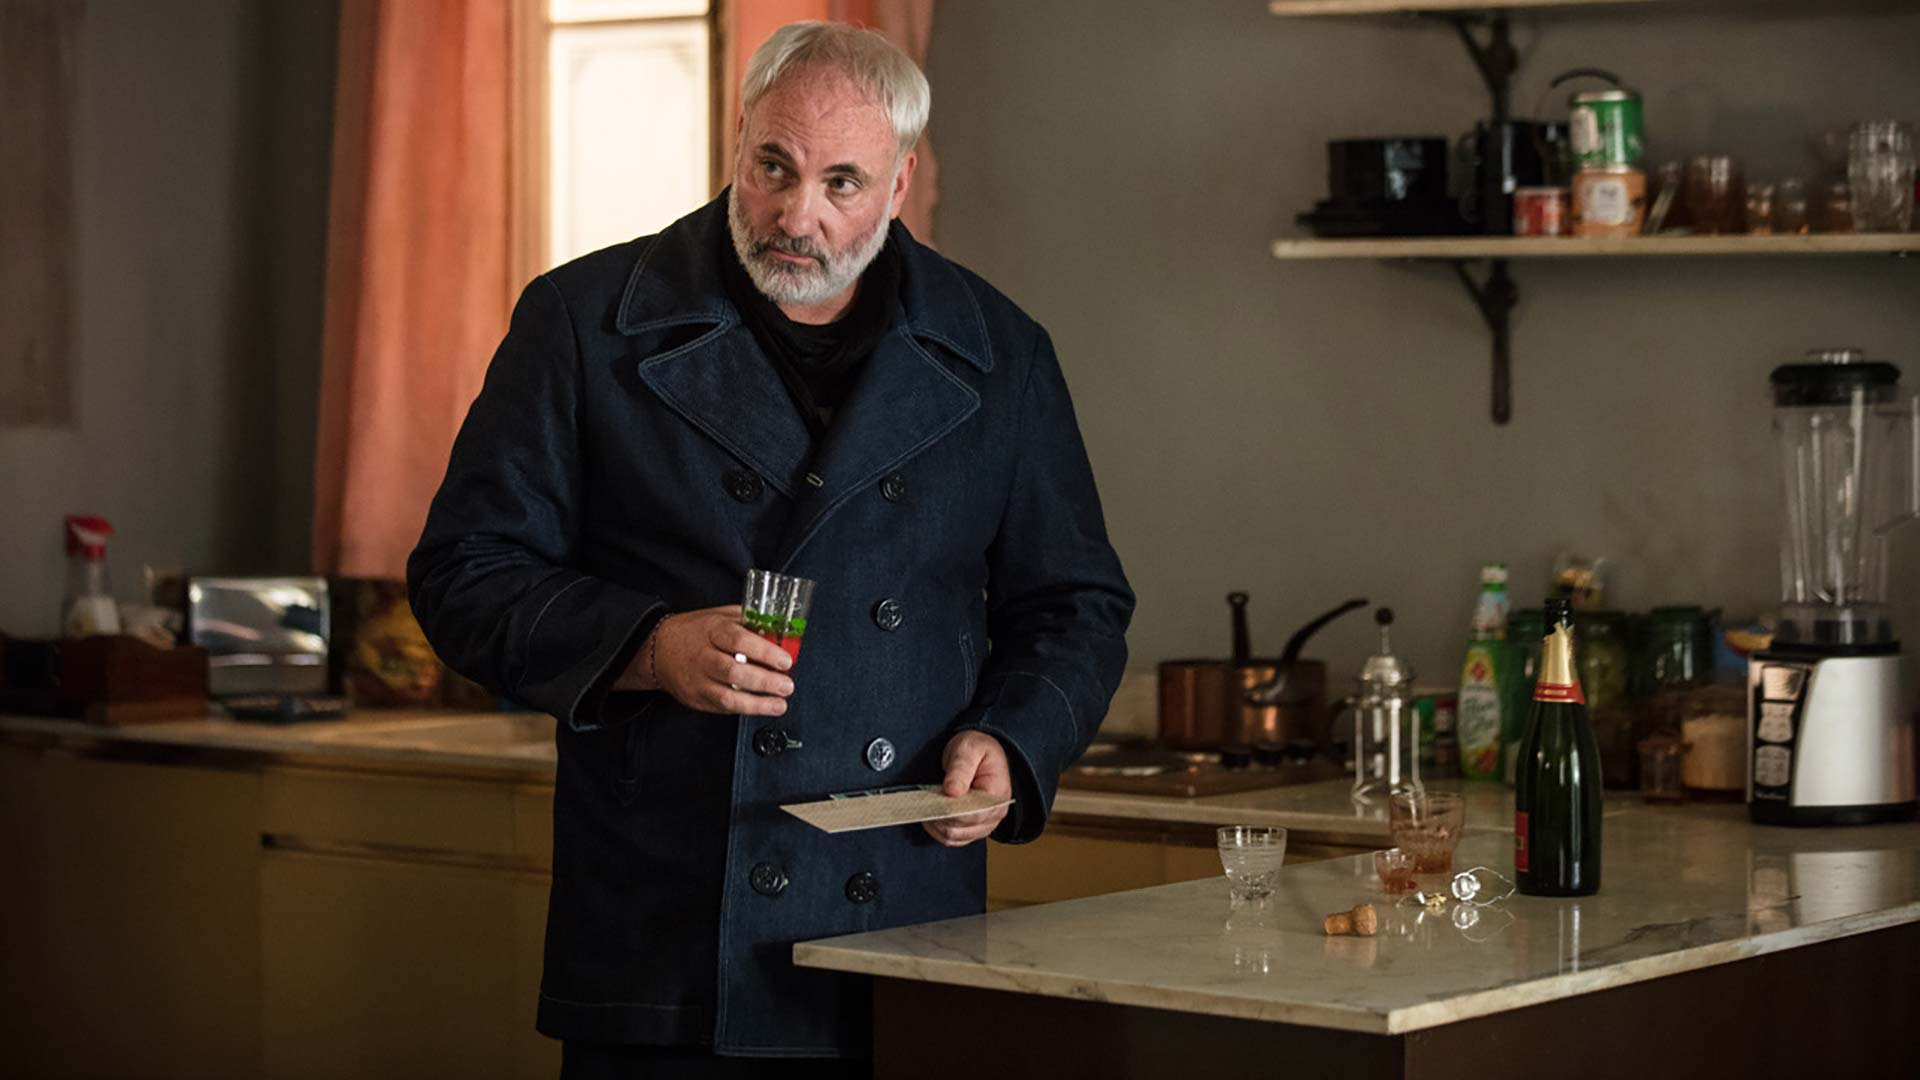 Konstantin Vasiliev holds a drink in Killing Eve